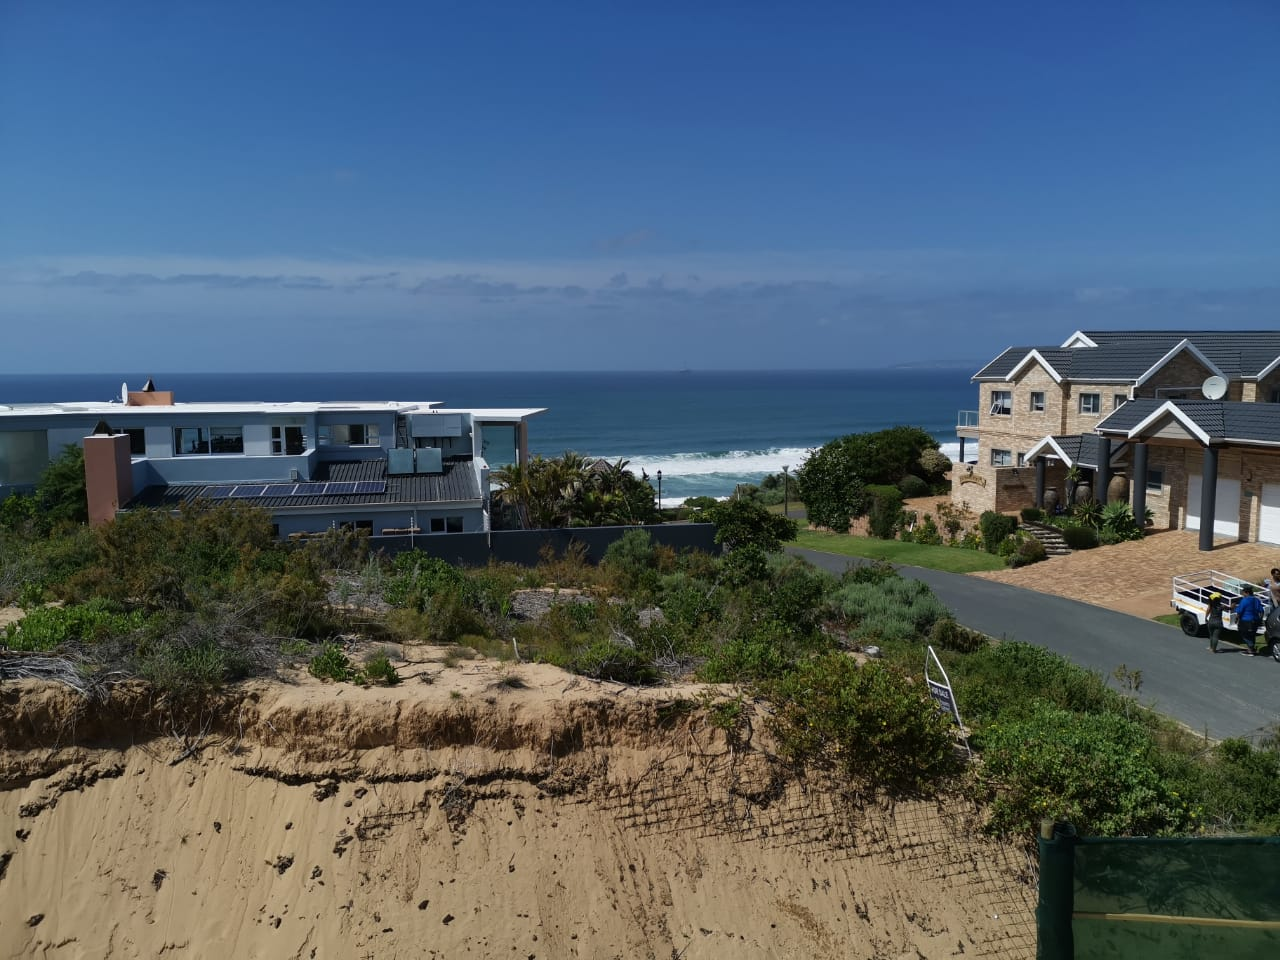 House for sale in Great Brak River